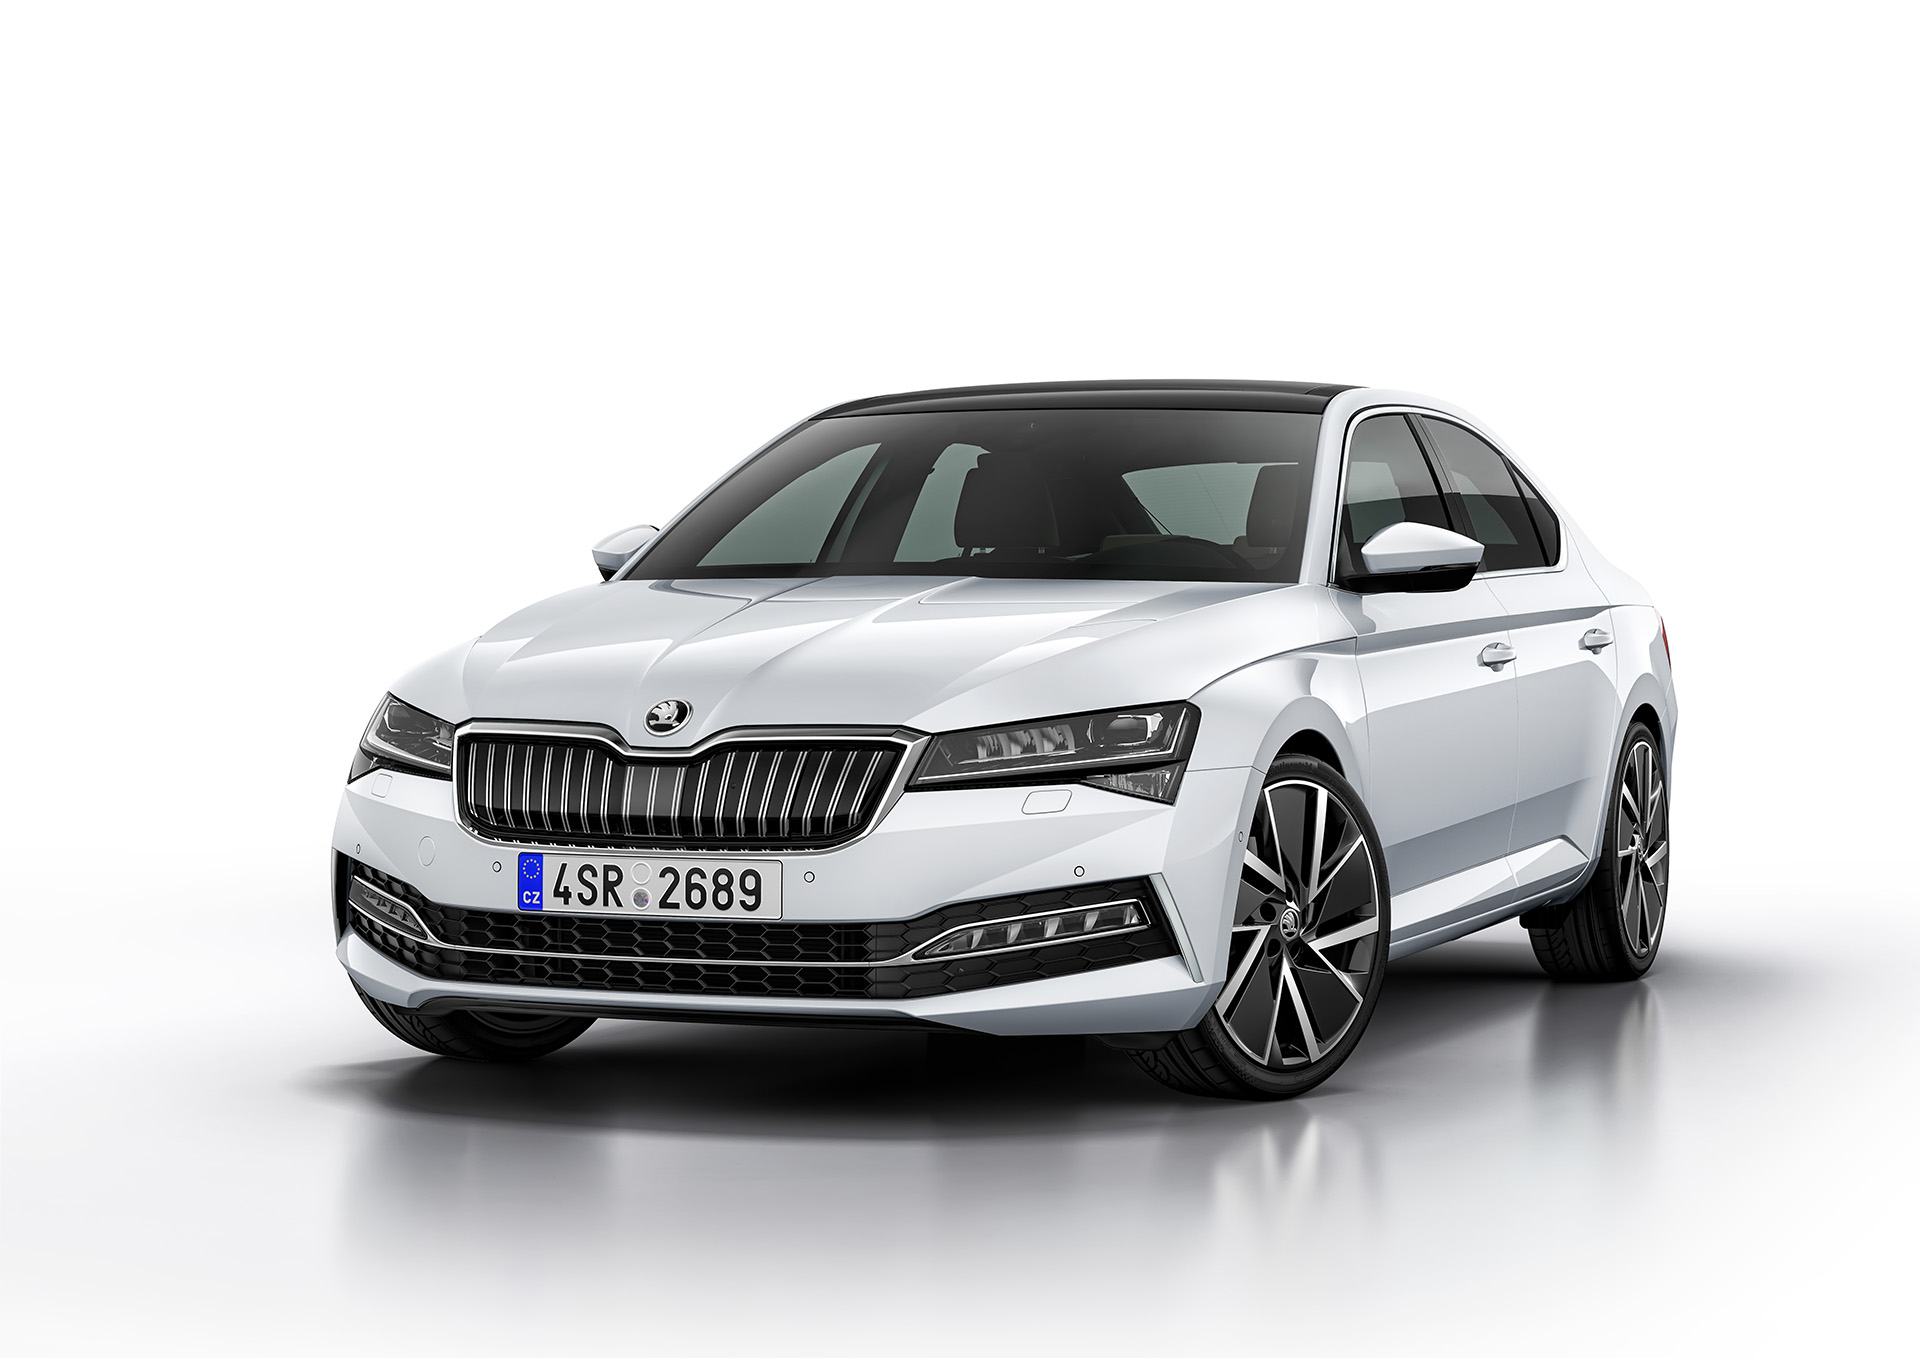 SKODA SUPERB iV2